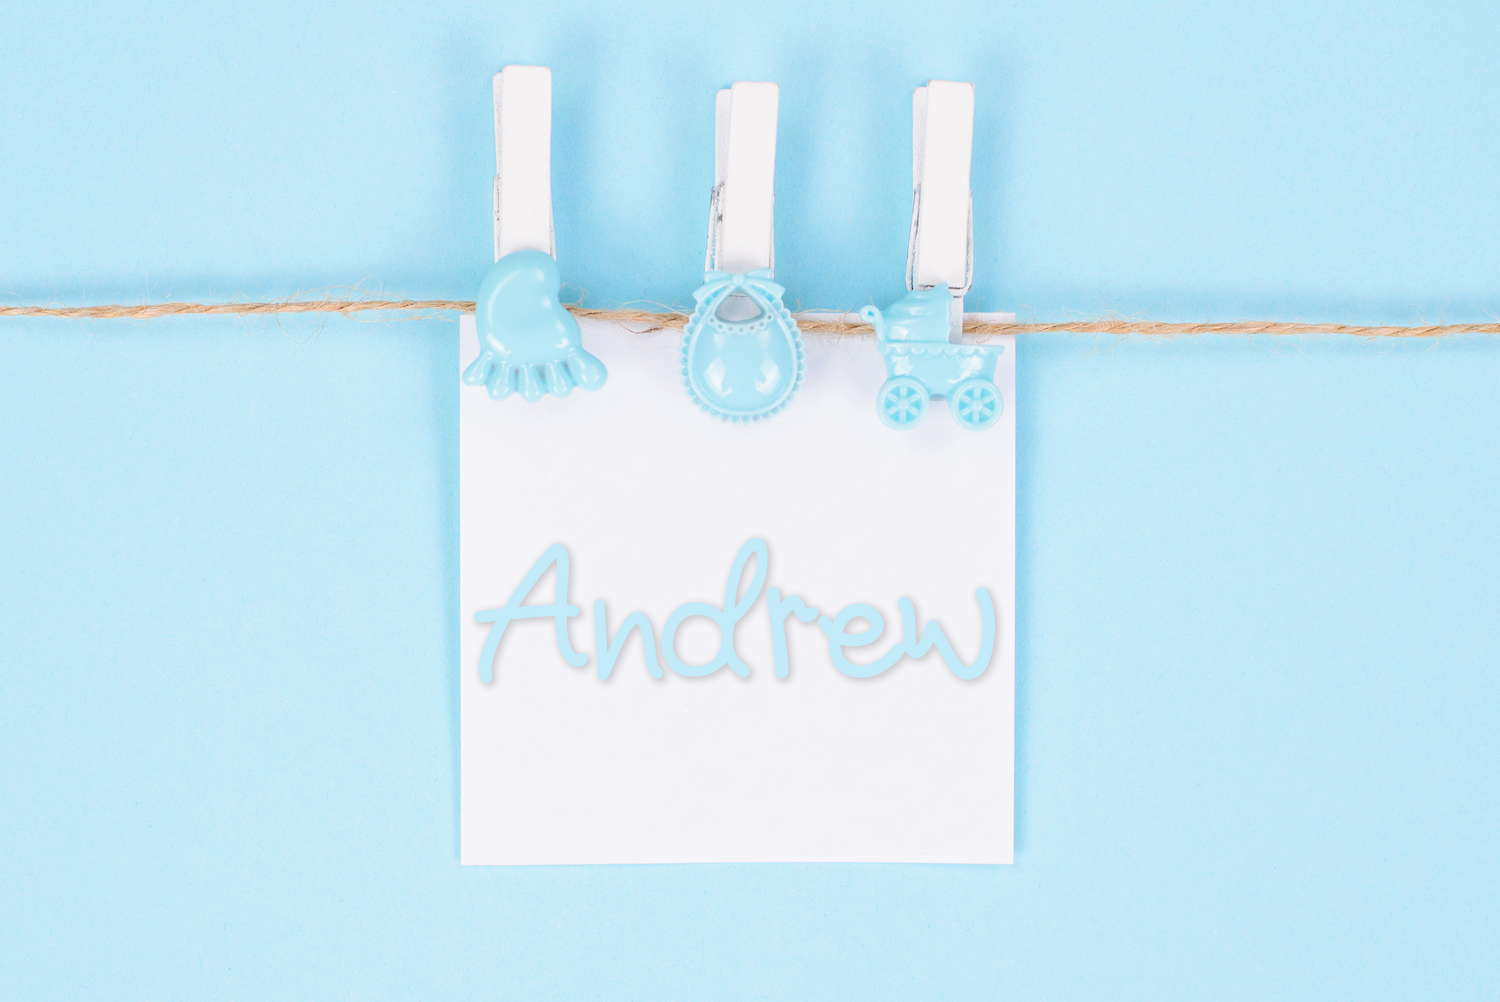 Andrew Baby Name